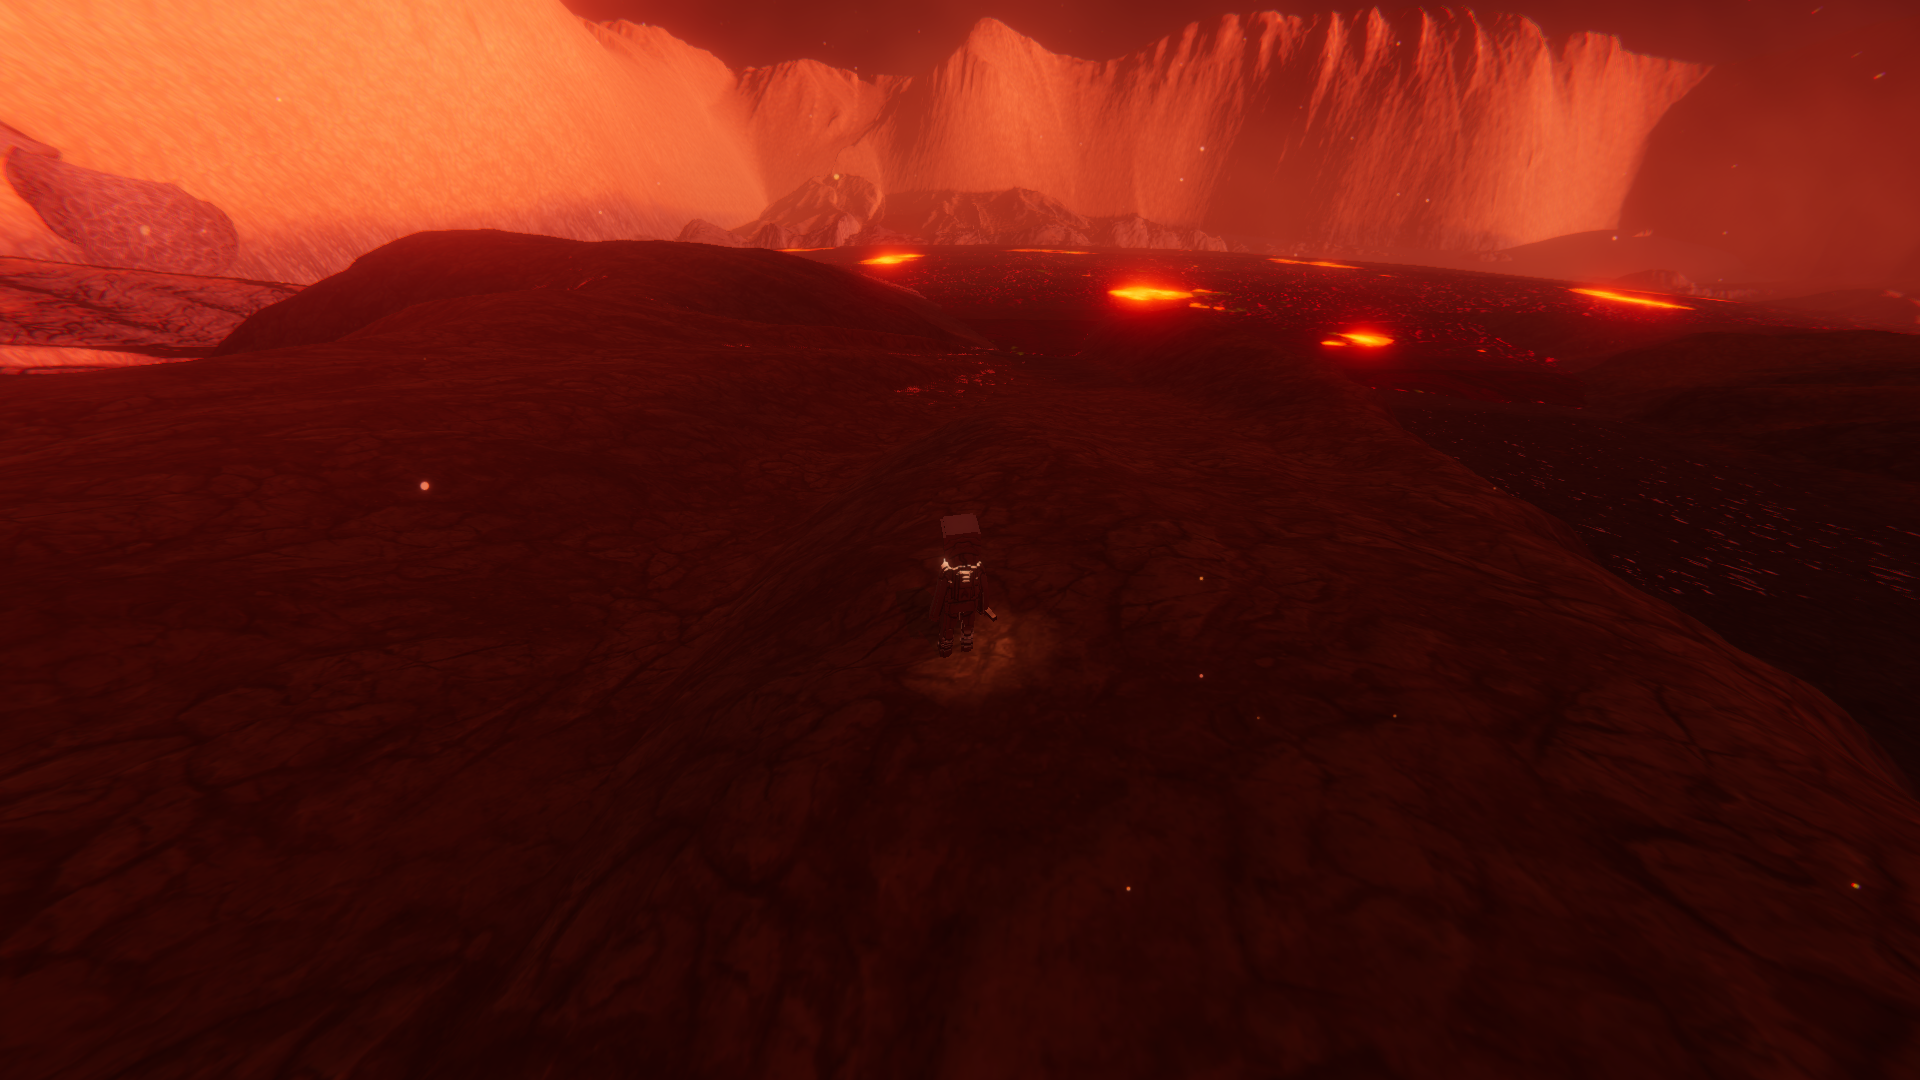 A land divided by a river of lava. reaching the other side might reveal some secret location of temple